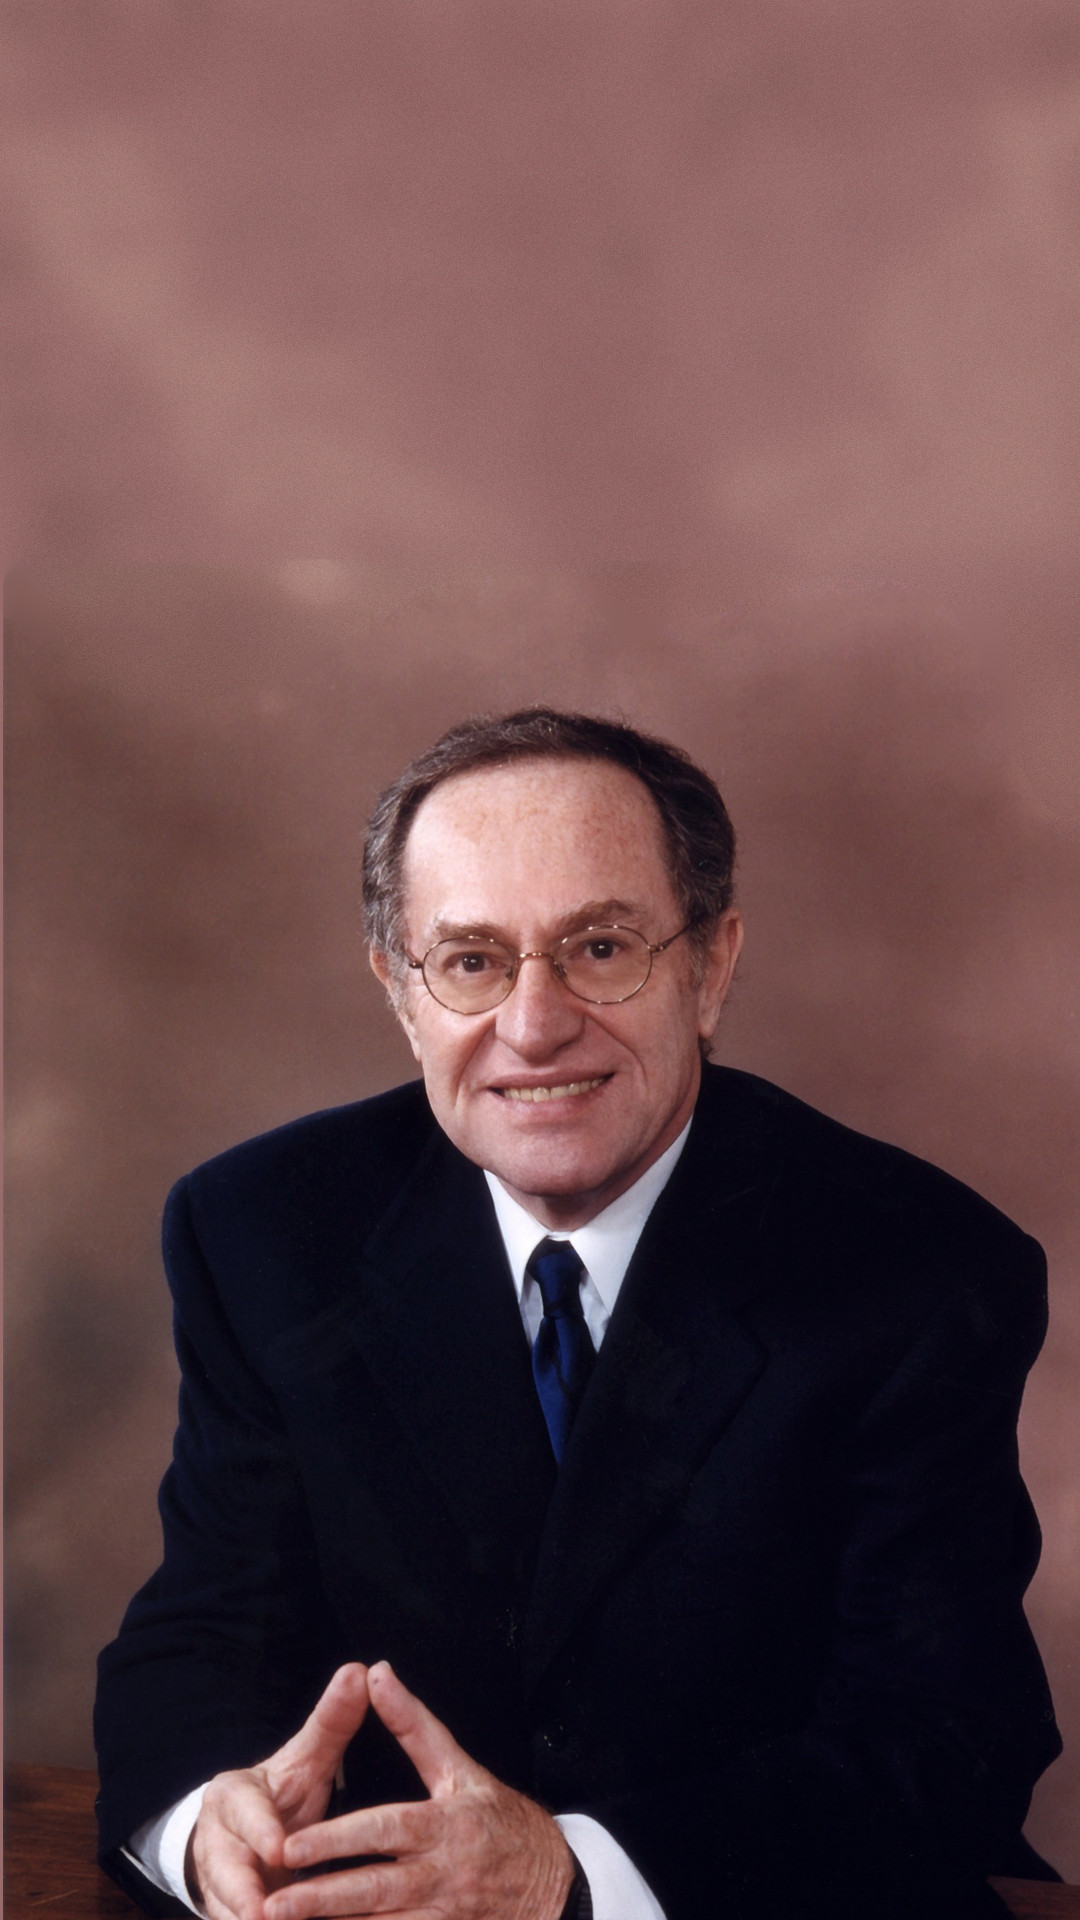 Dershowitz for the Defense – Alan Dershowitz